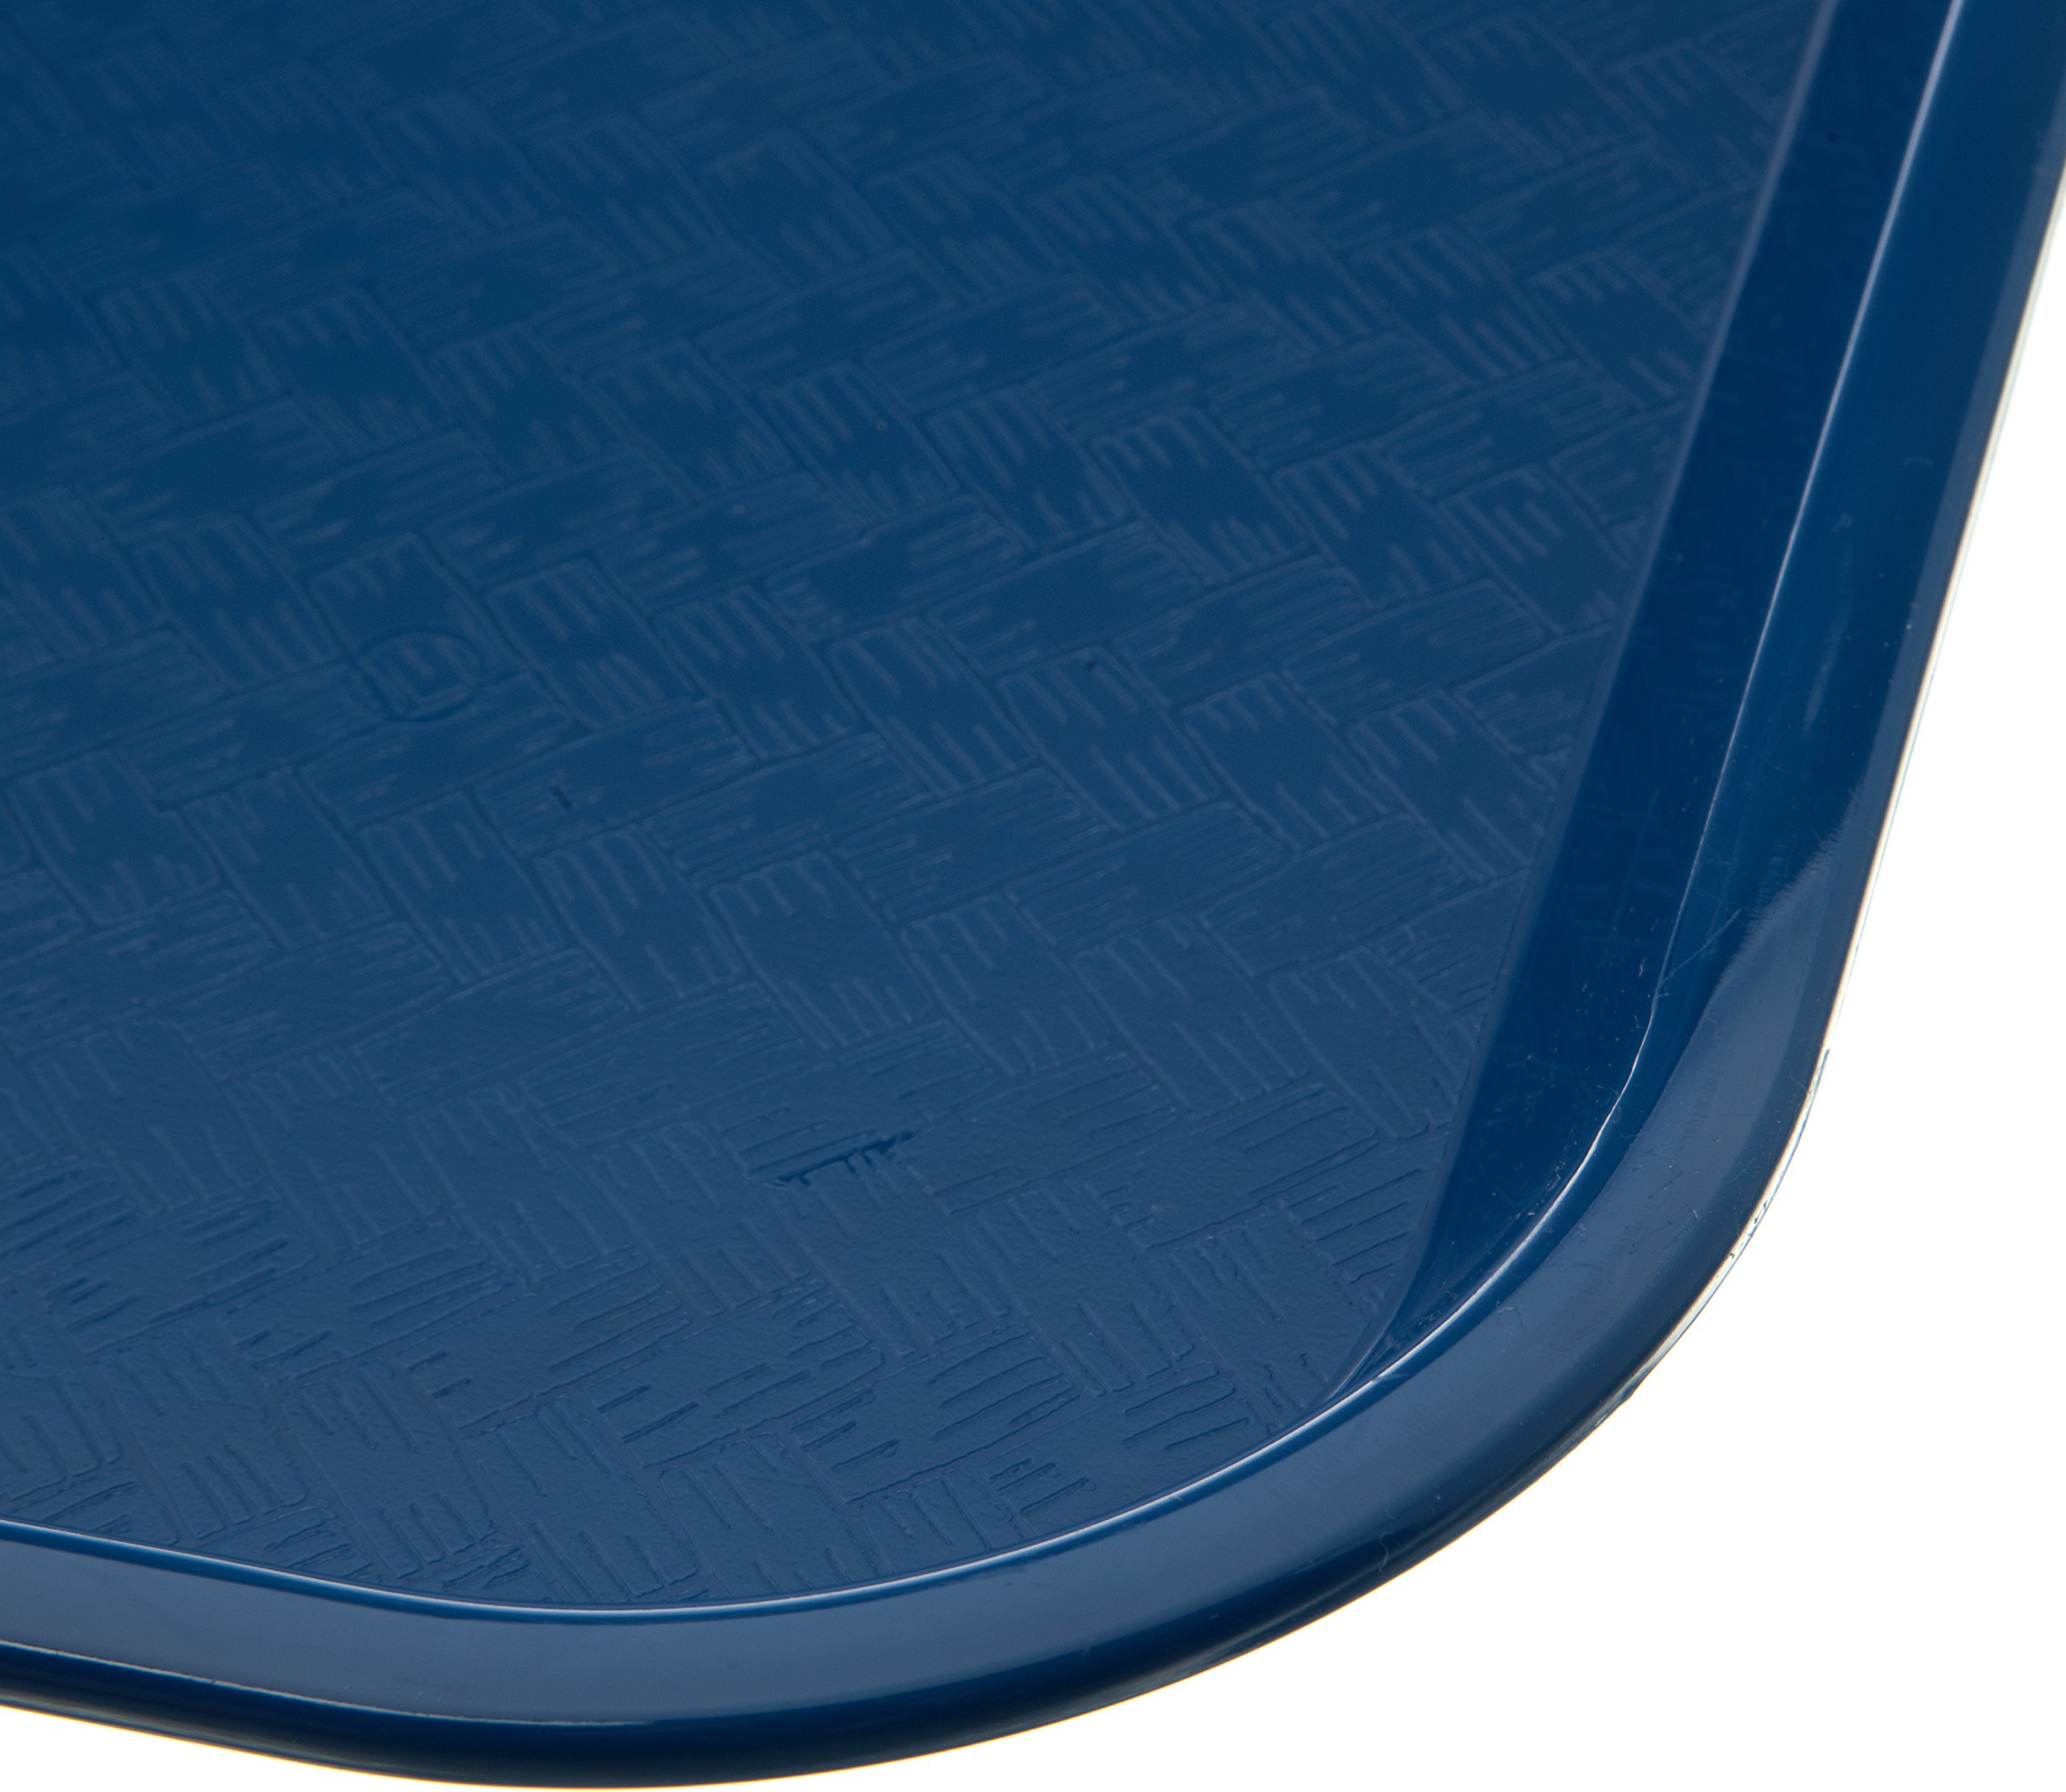 Carlisle CT141814 Café Standard Cafeteria / Fast Food Tray, 14'' x 18'', Blue (Pack of 12) by Carlisle (Image #4)